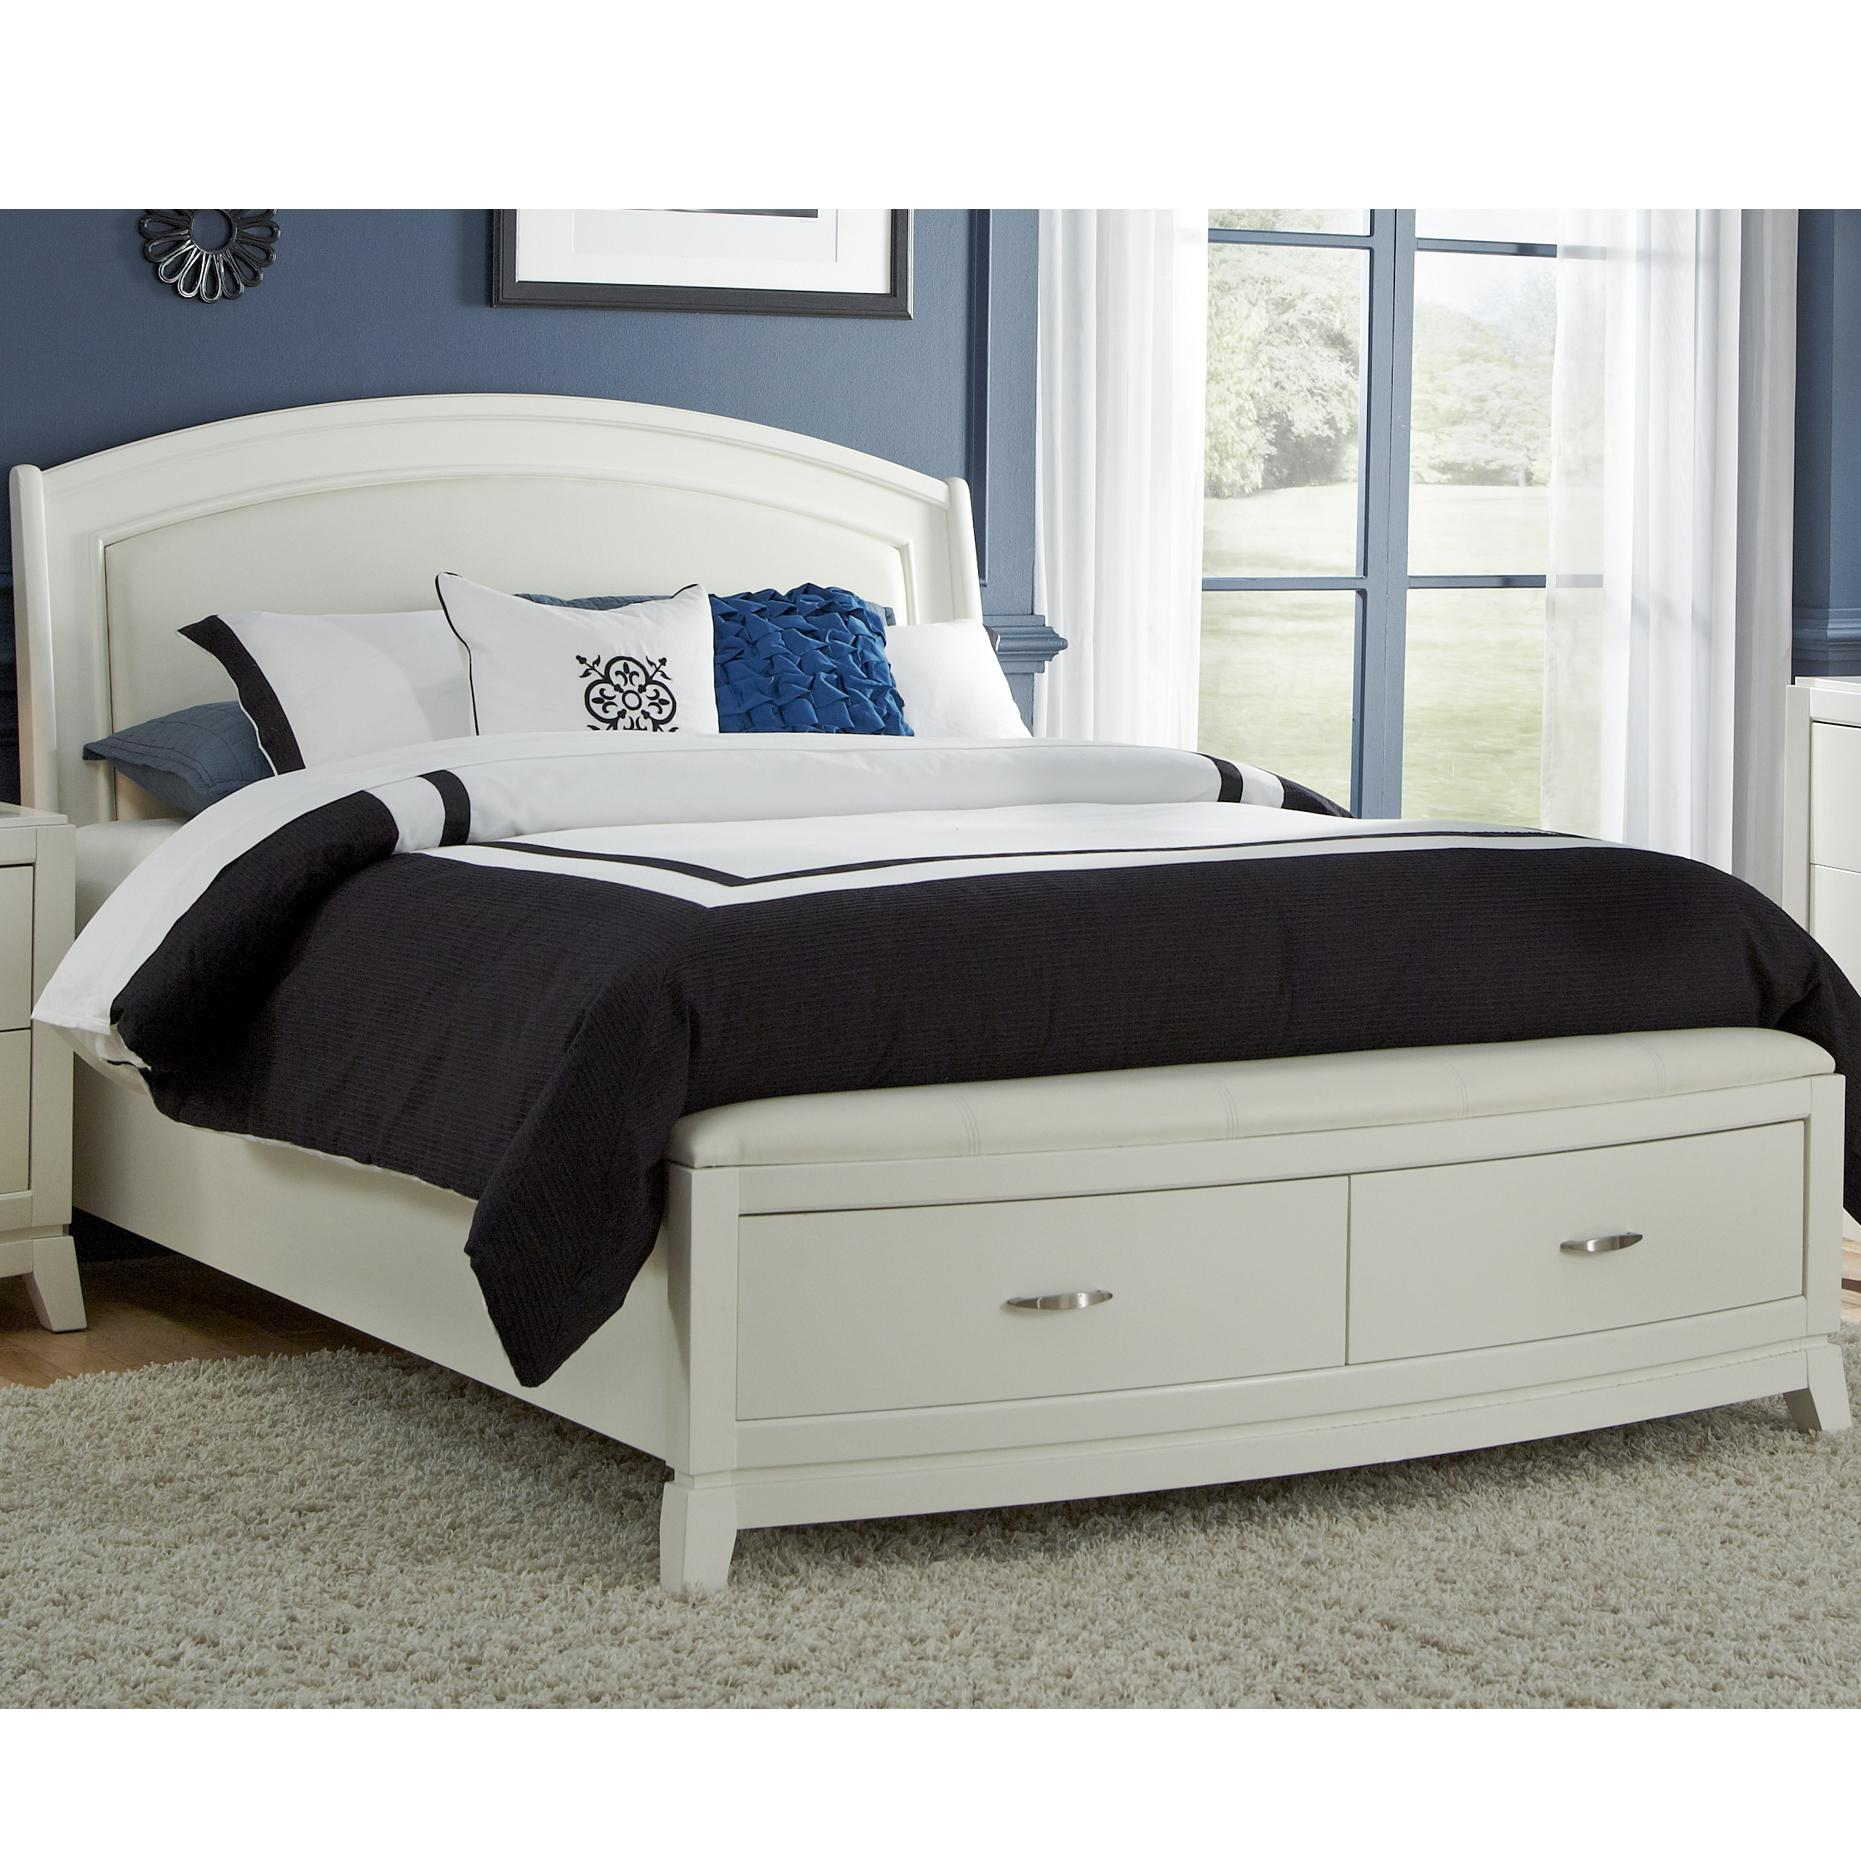 Liberty Furniture Avalon II Leather King Platform Bed with Storage - Item Number: 205-BR-KSB